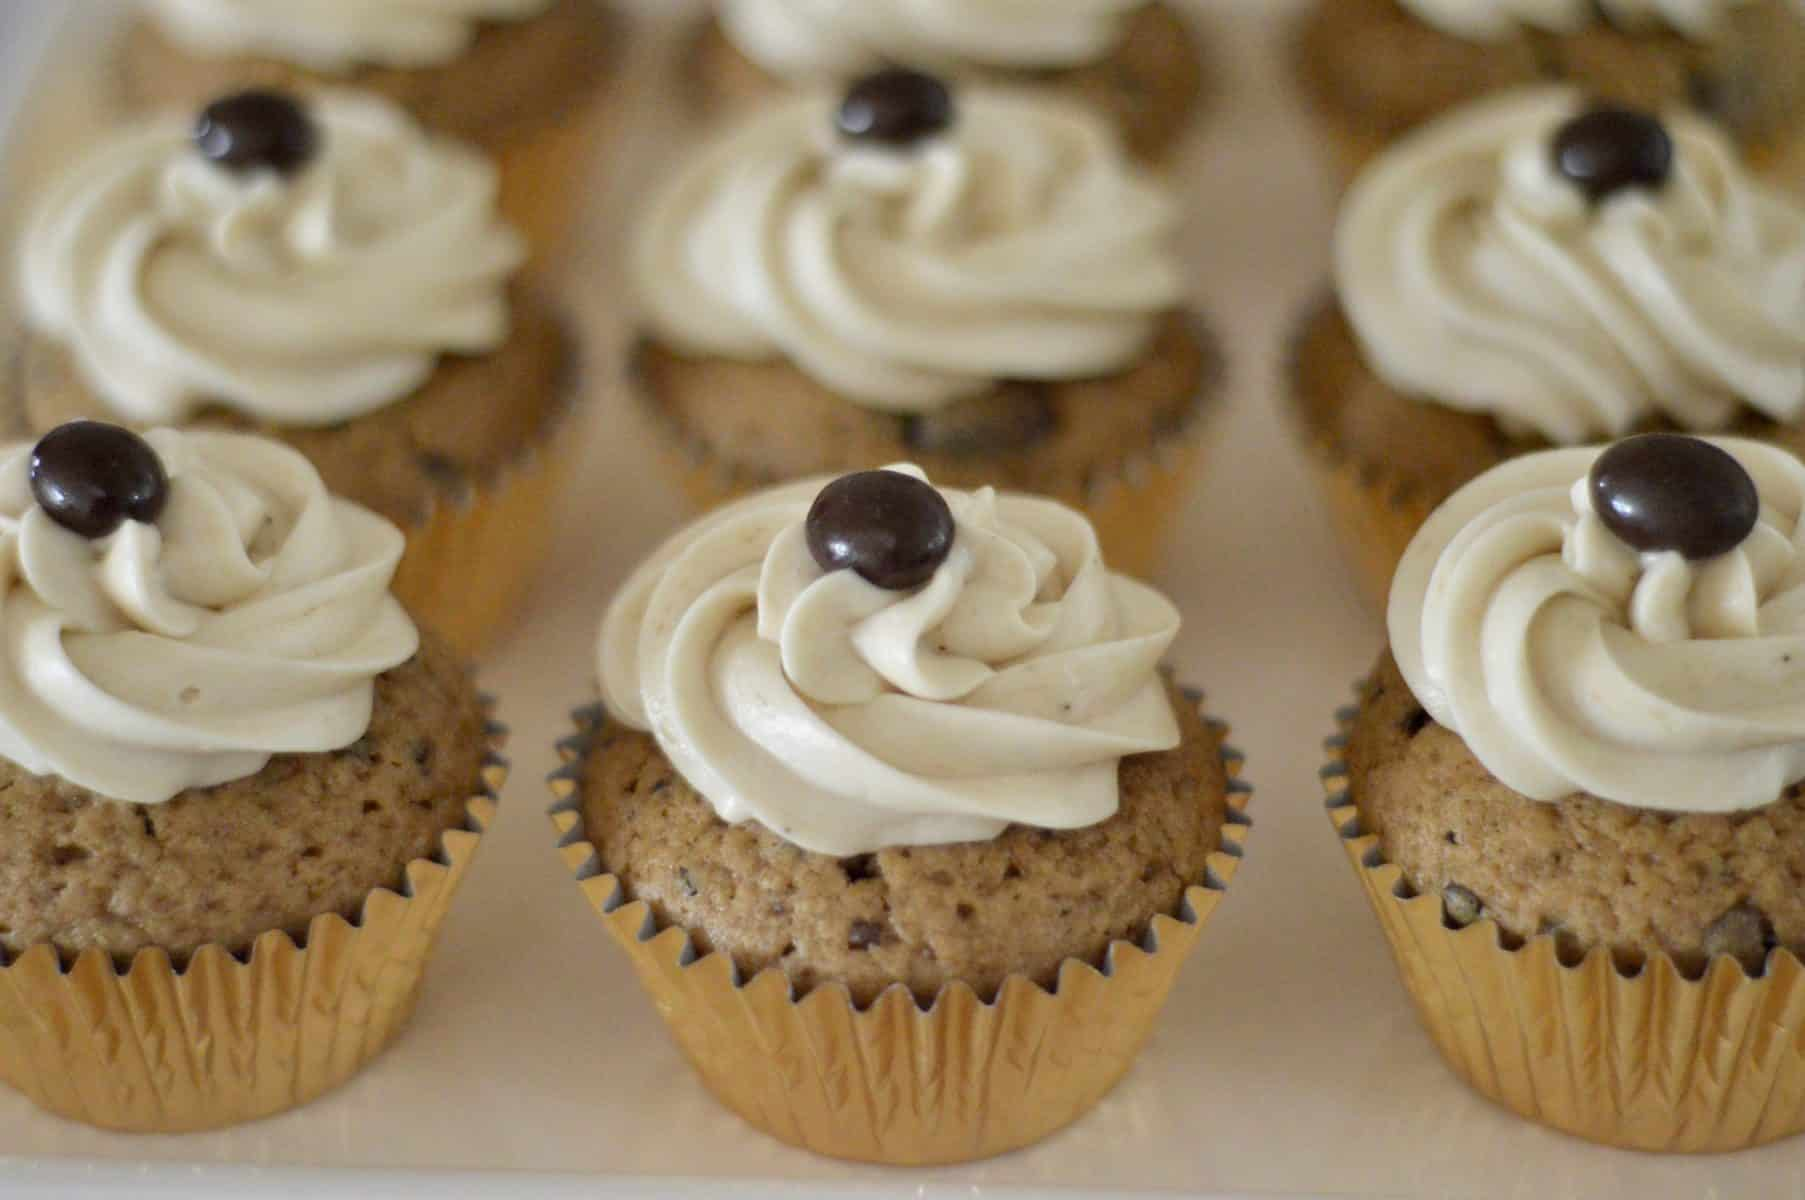 Espresso Cupcakes with Espresso Cream Cheese Frosting and a chocolate-covered espresso bean on top.